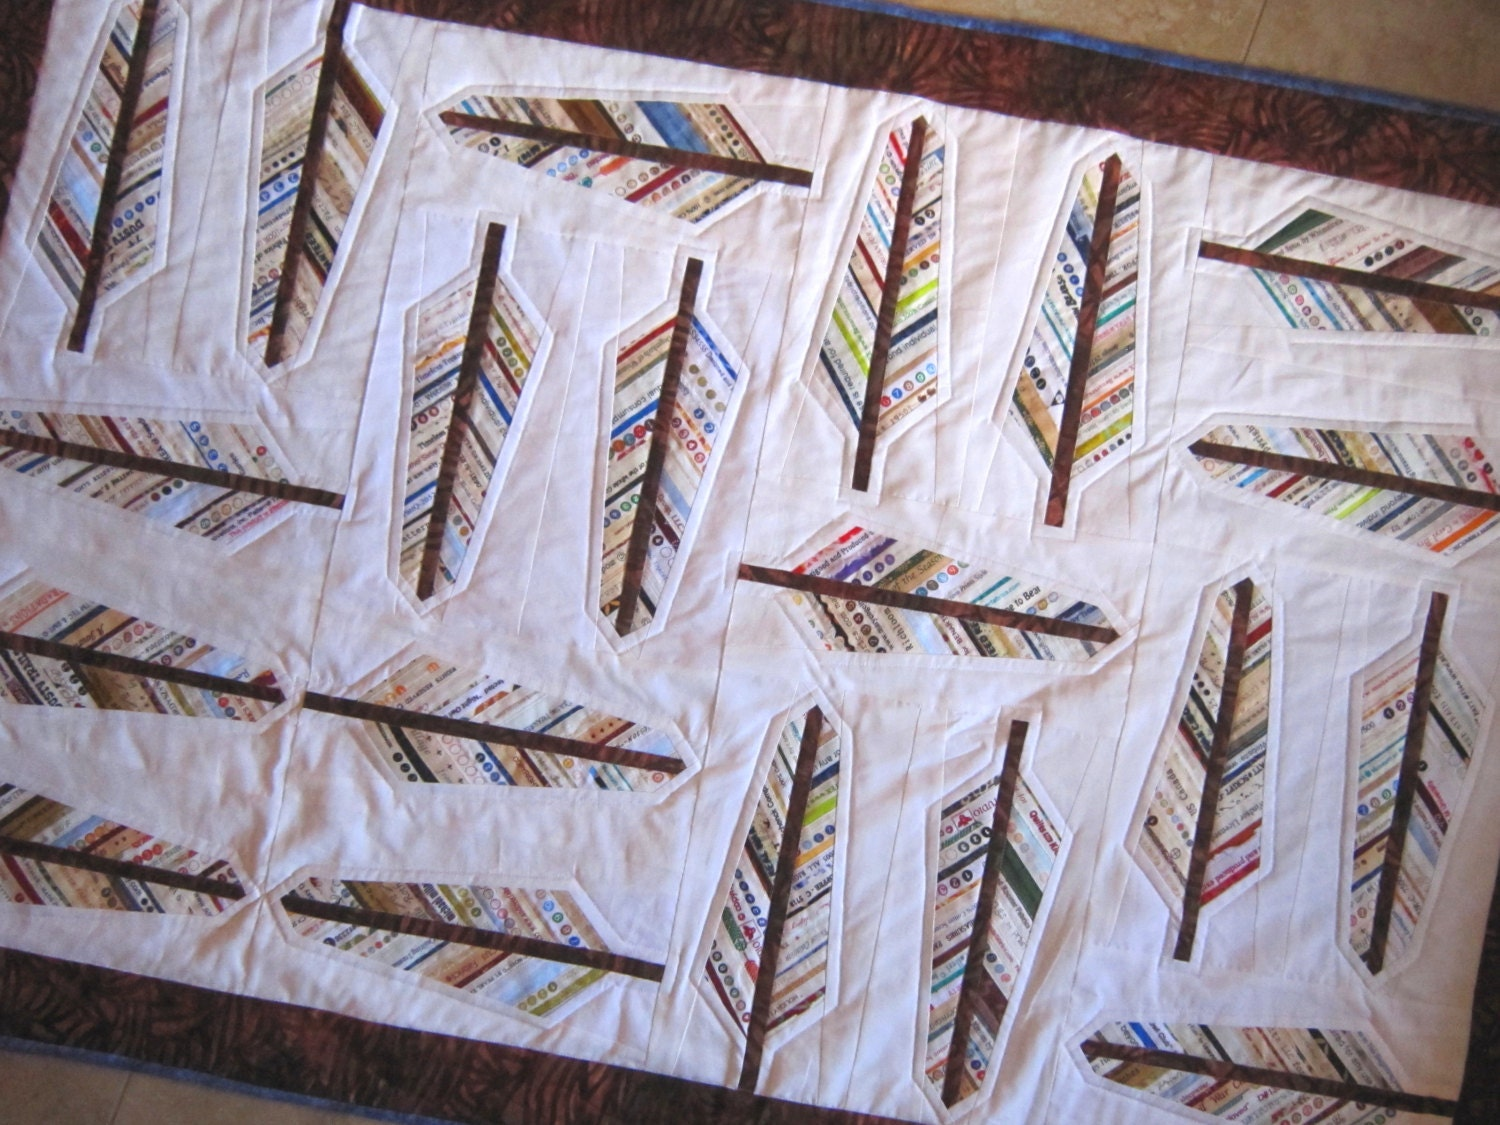 AUDUBON Selvage Feather Quilt Pattern from Quilts by Elena